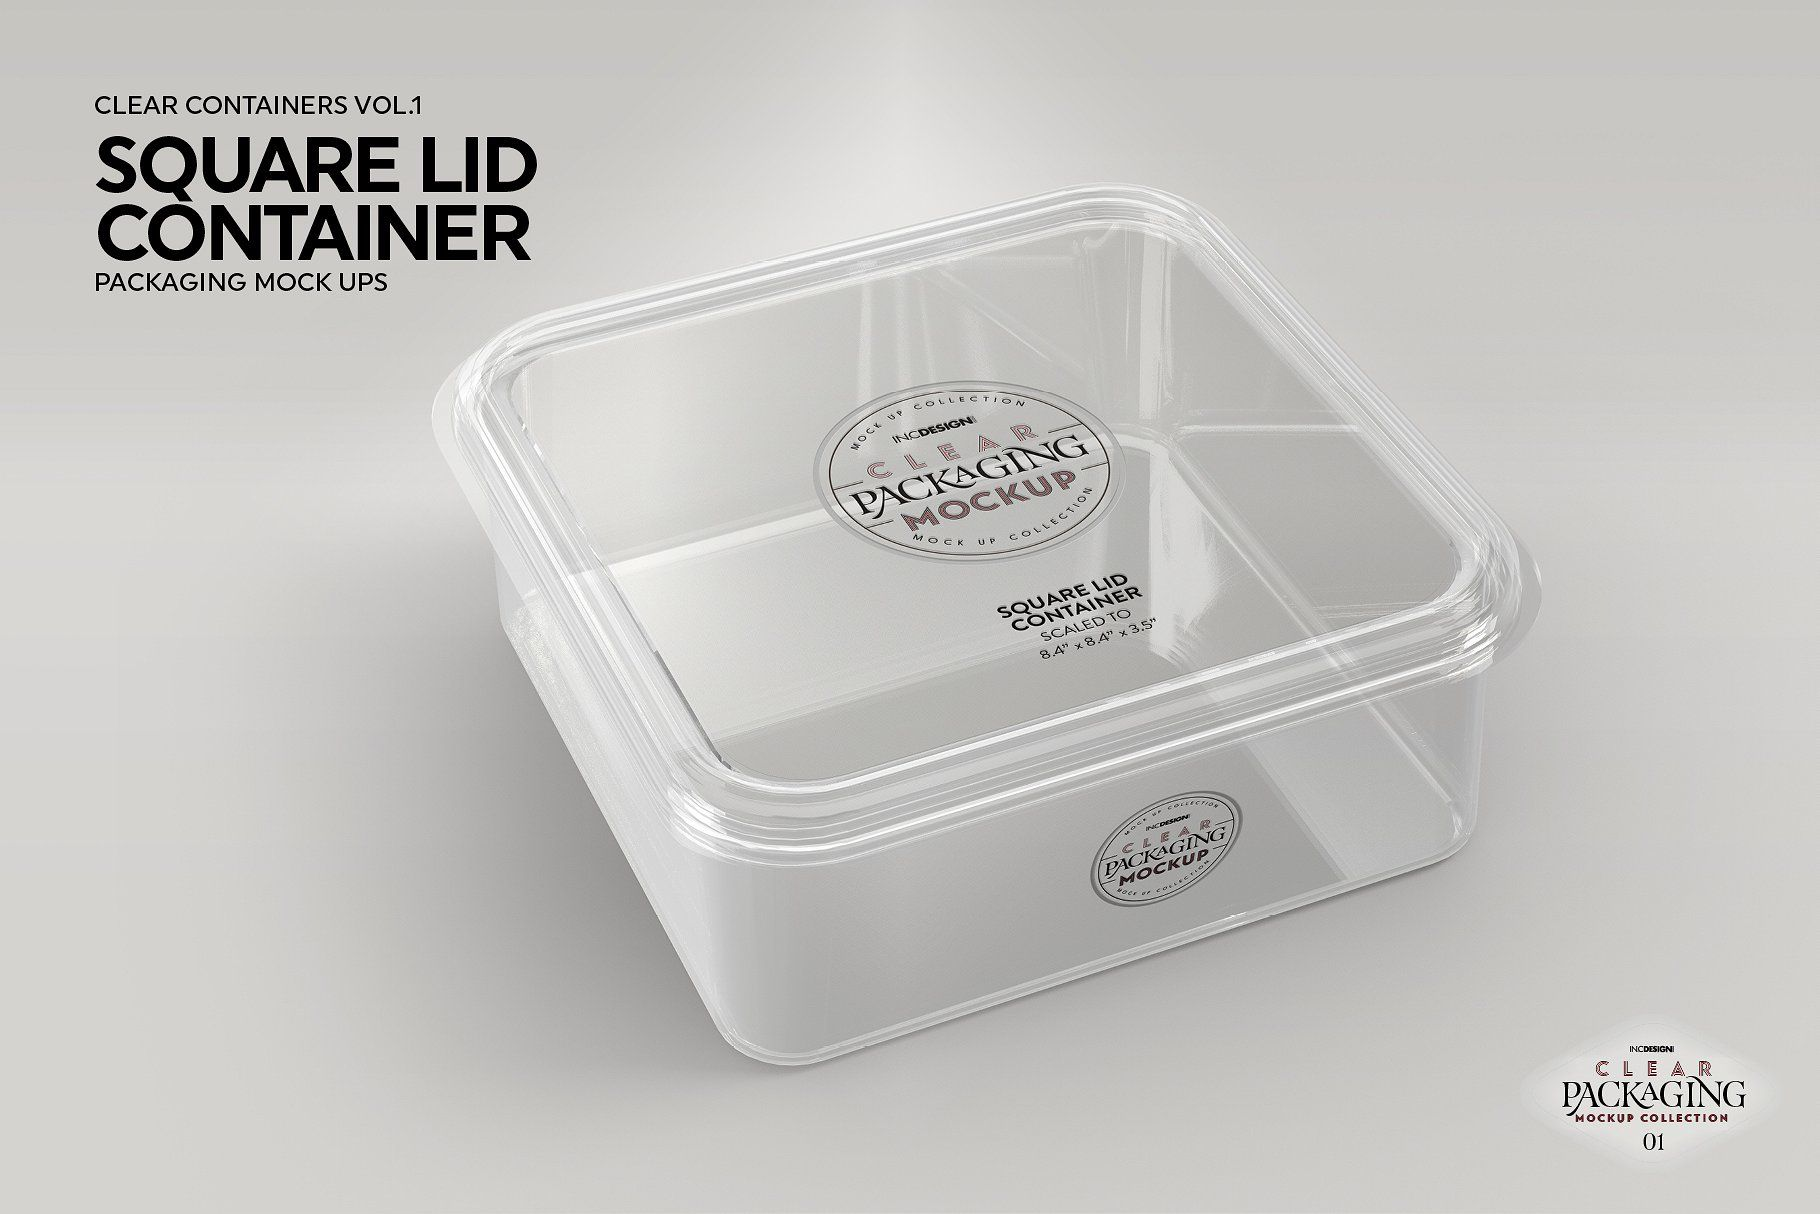 Download 01 Clear Container Packaging Mockups Packaging Mockup Lidded Container Clear Container